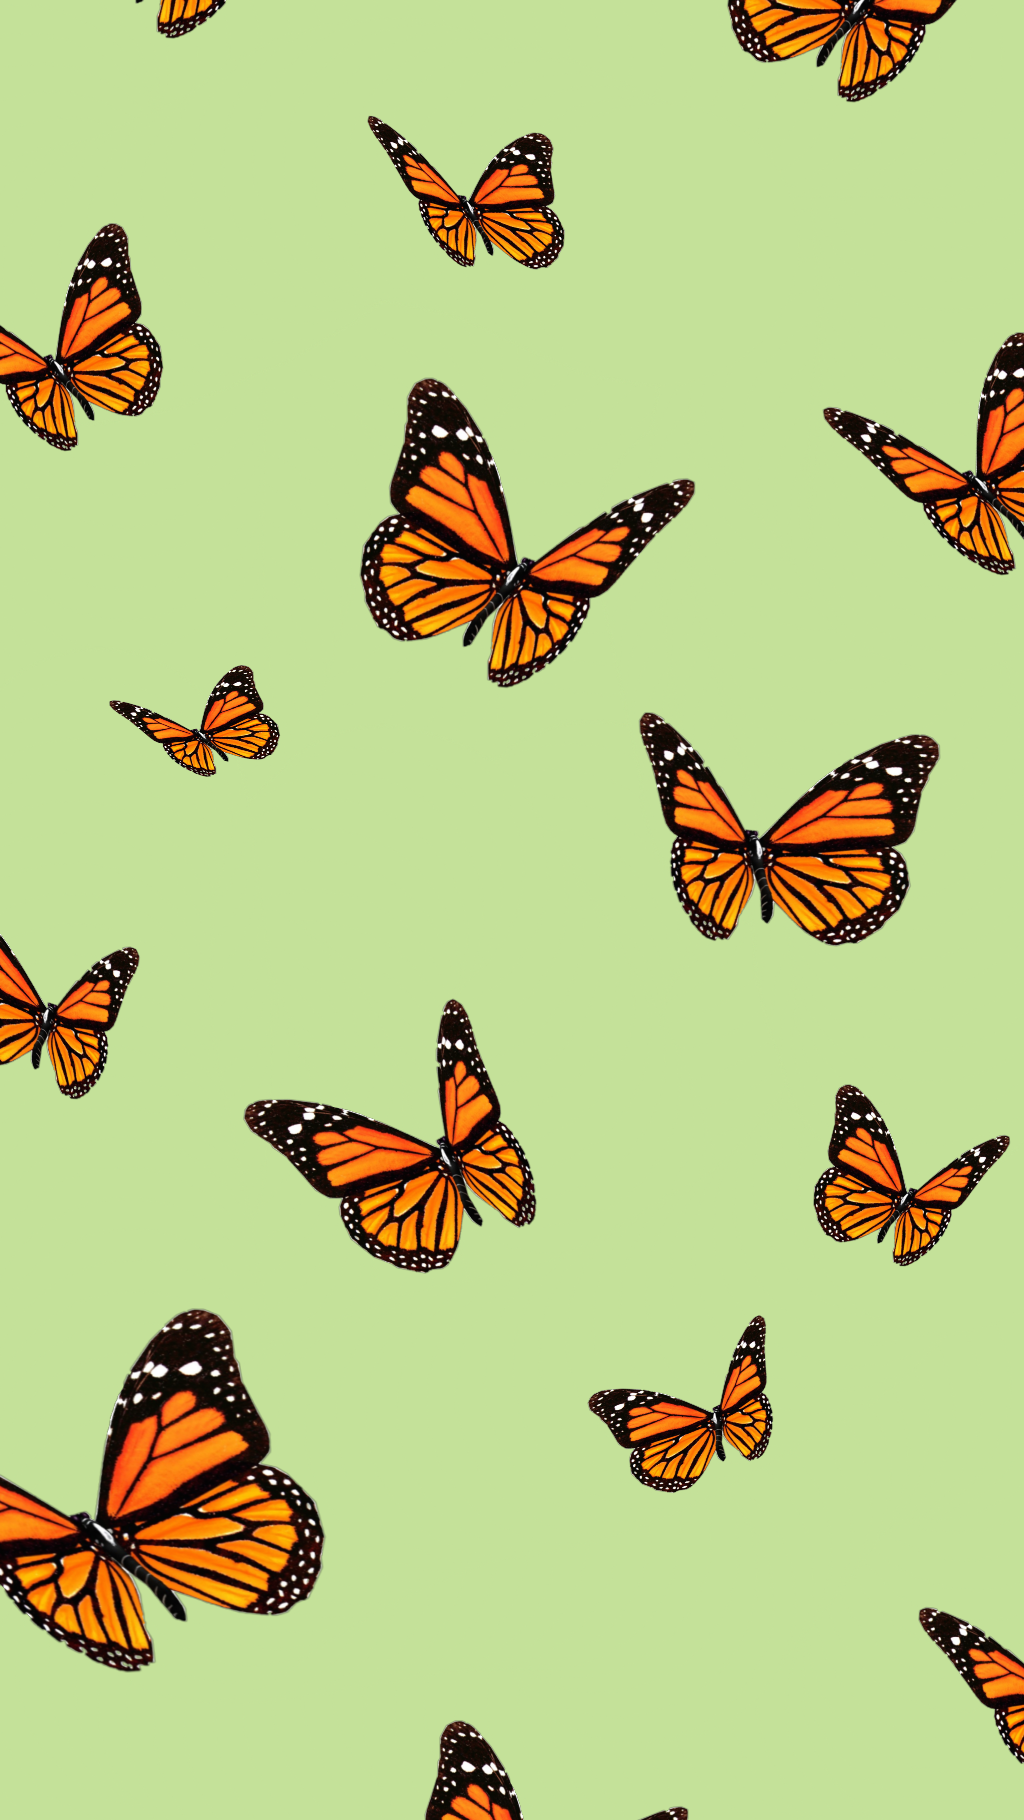 Aesthetic Butterfly Wallpapers - Wallpaper Cave